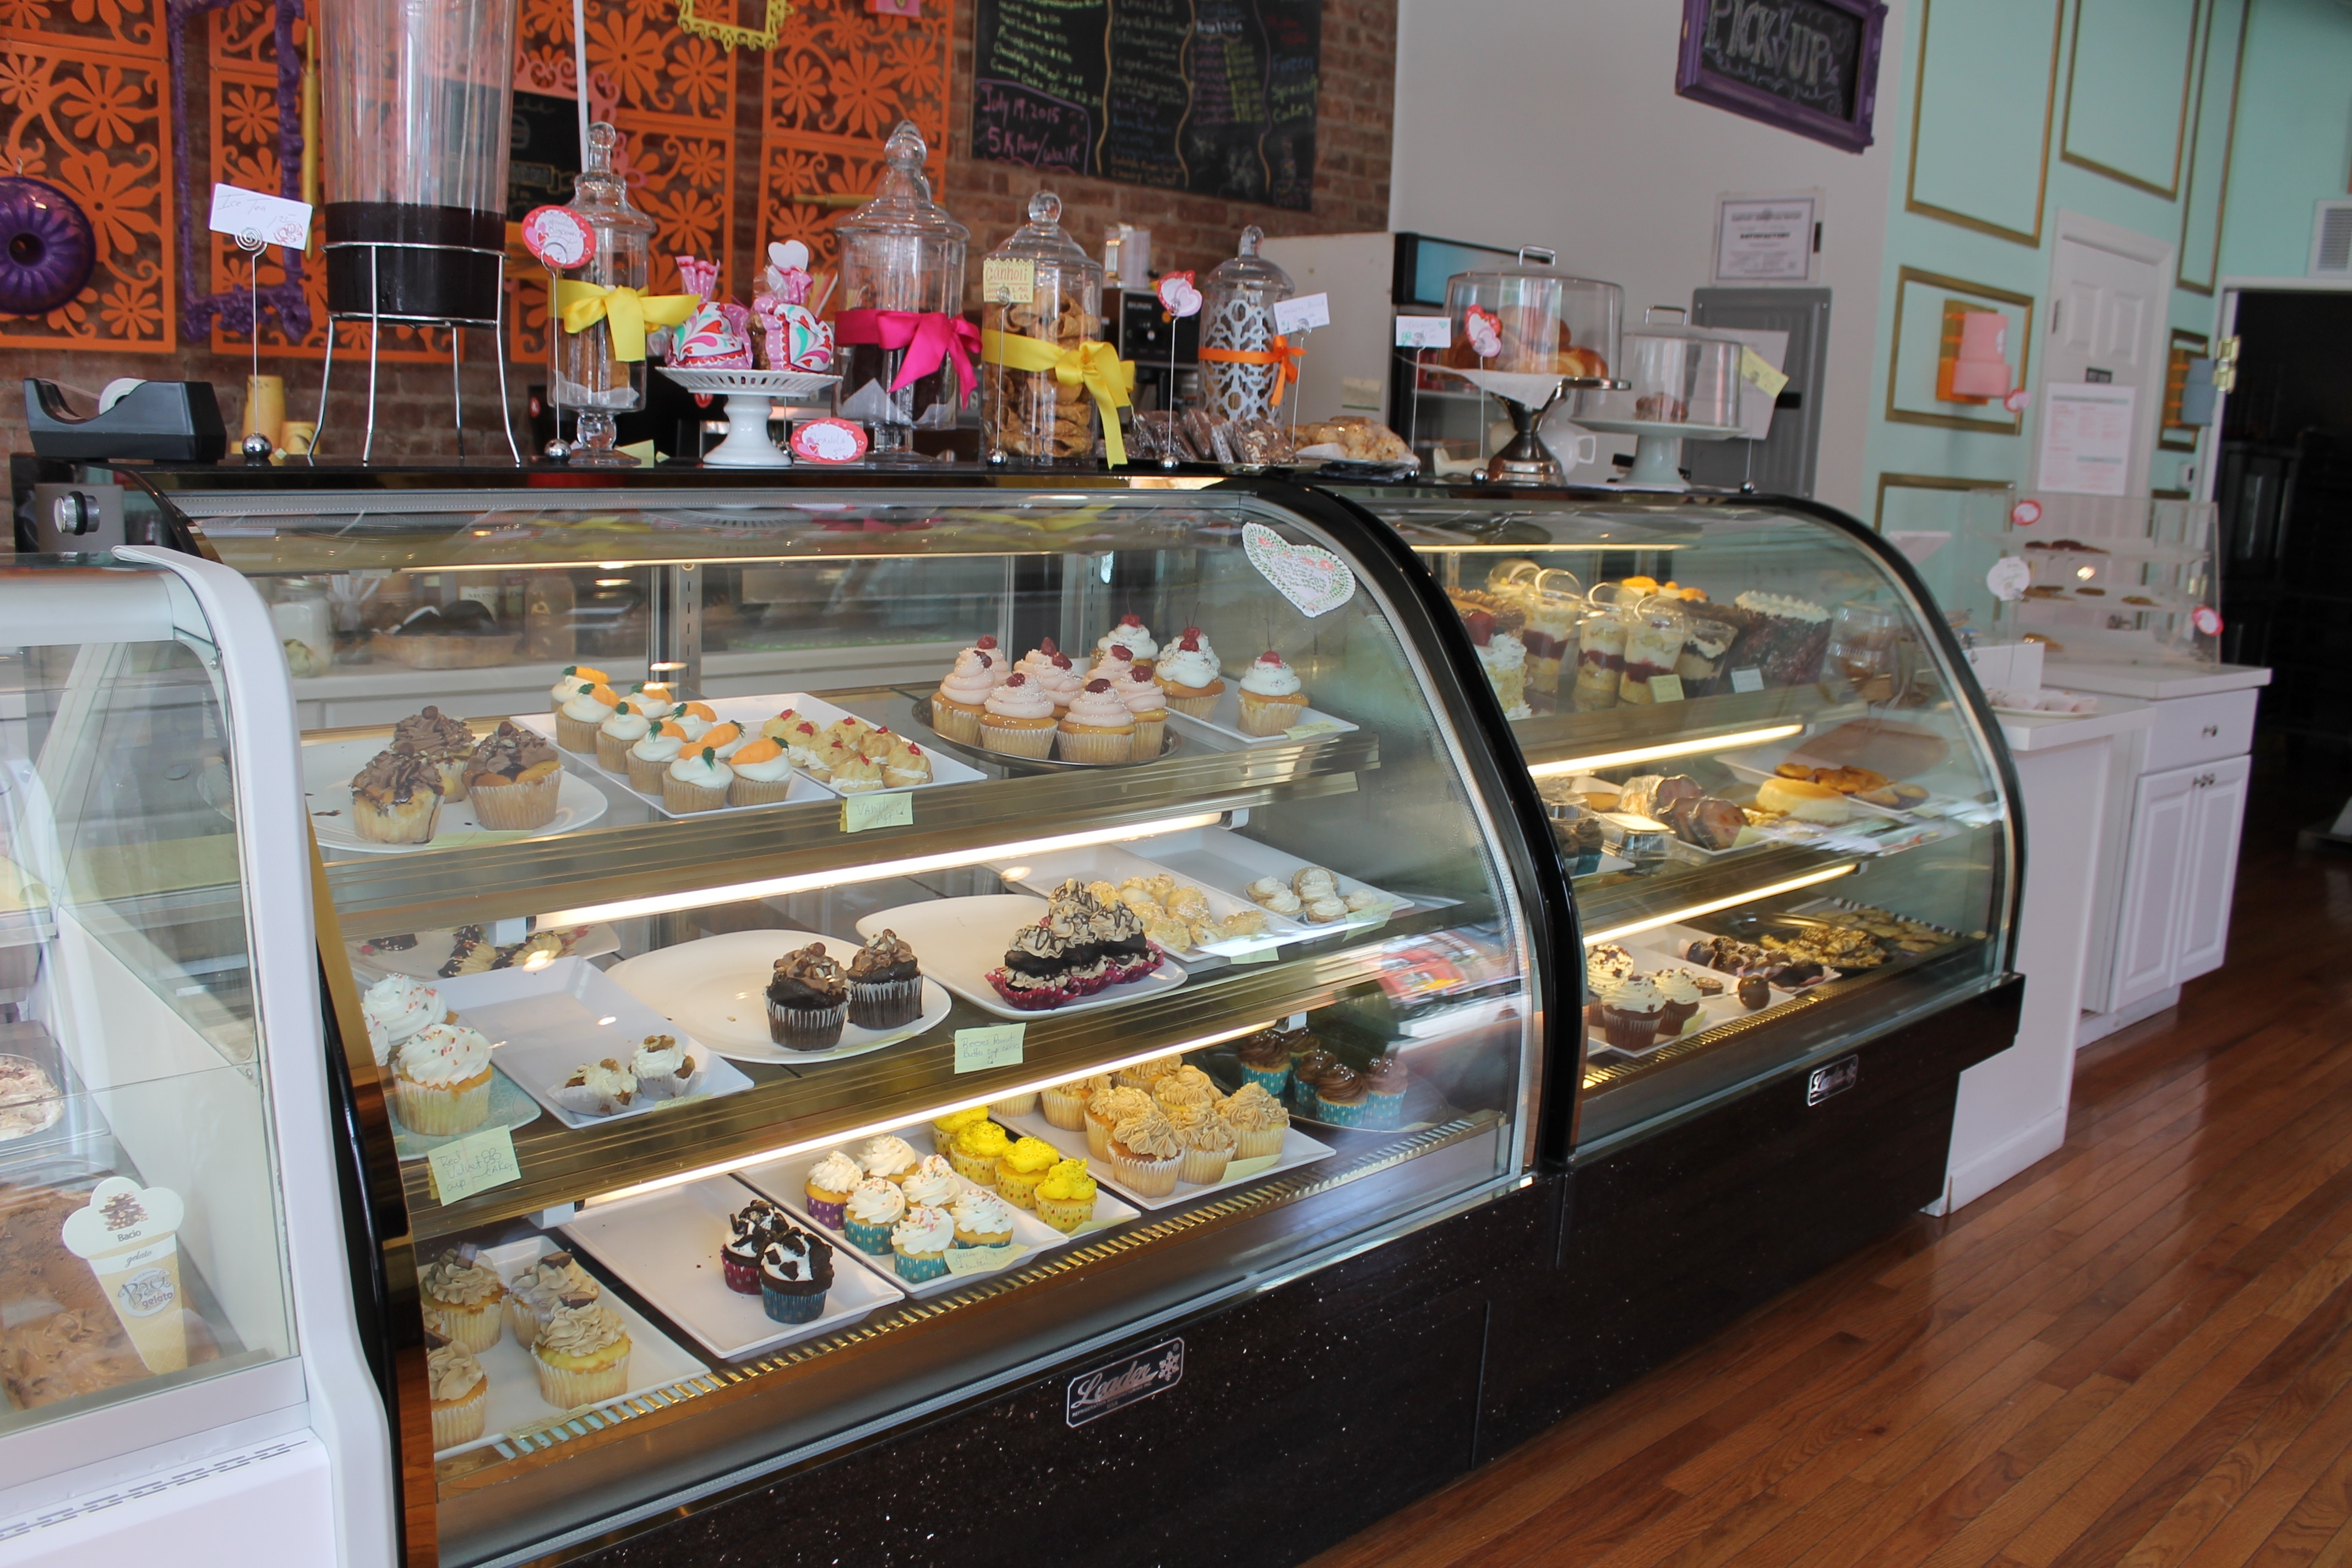 Sugartown Bakery & Cafe - CHICPEAJC